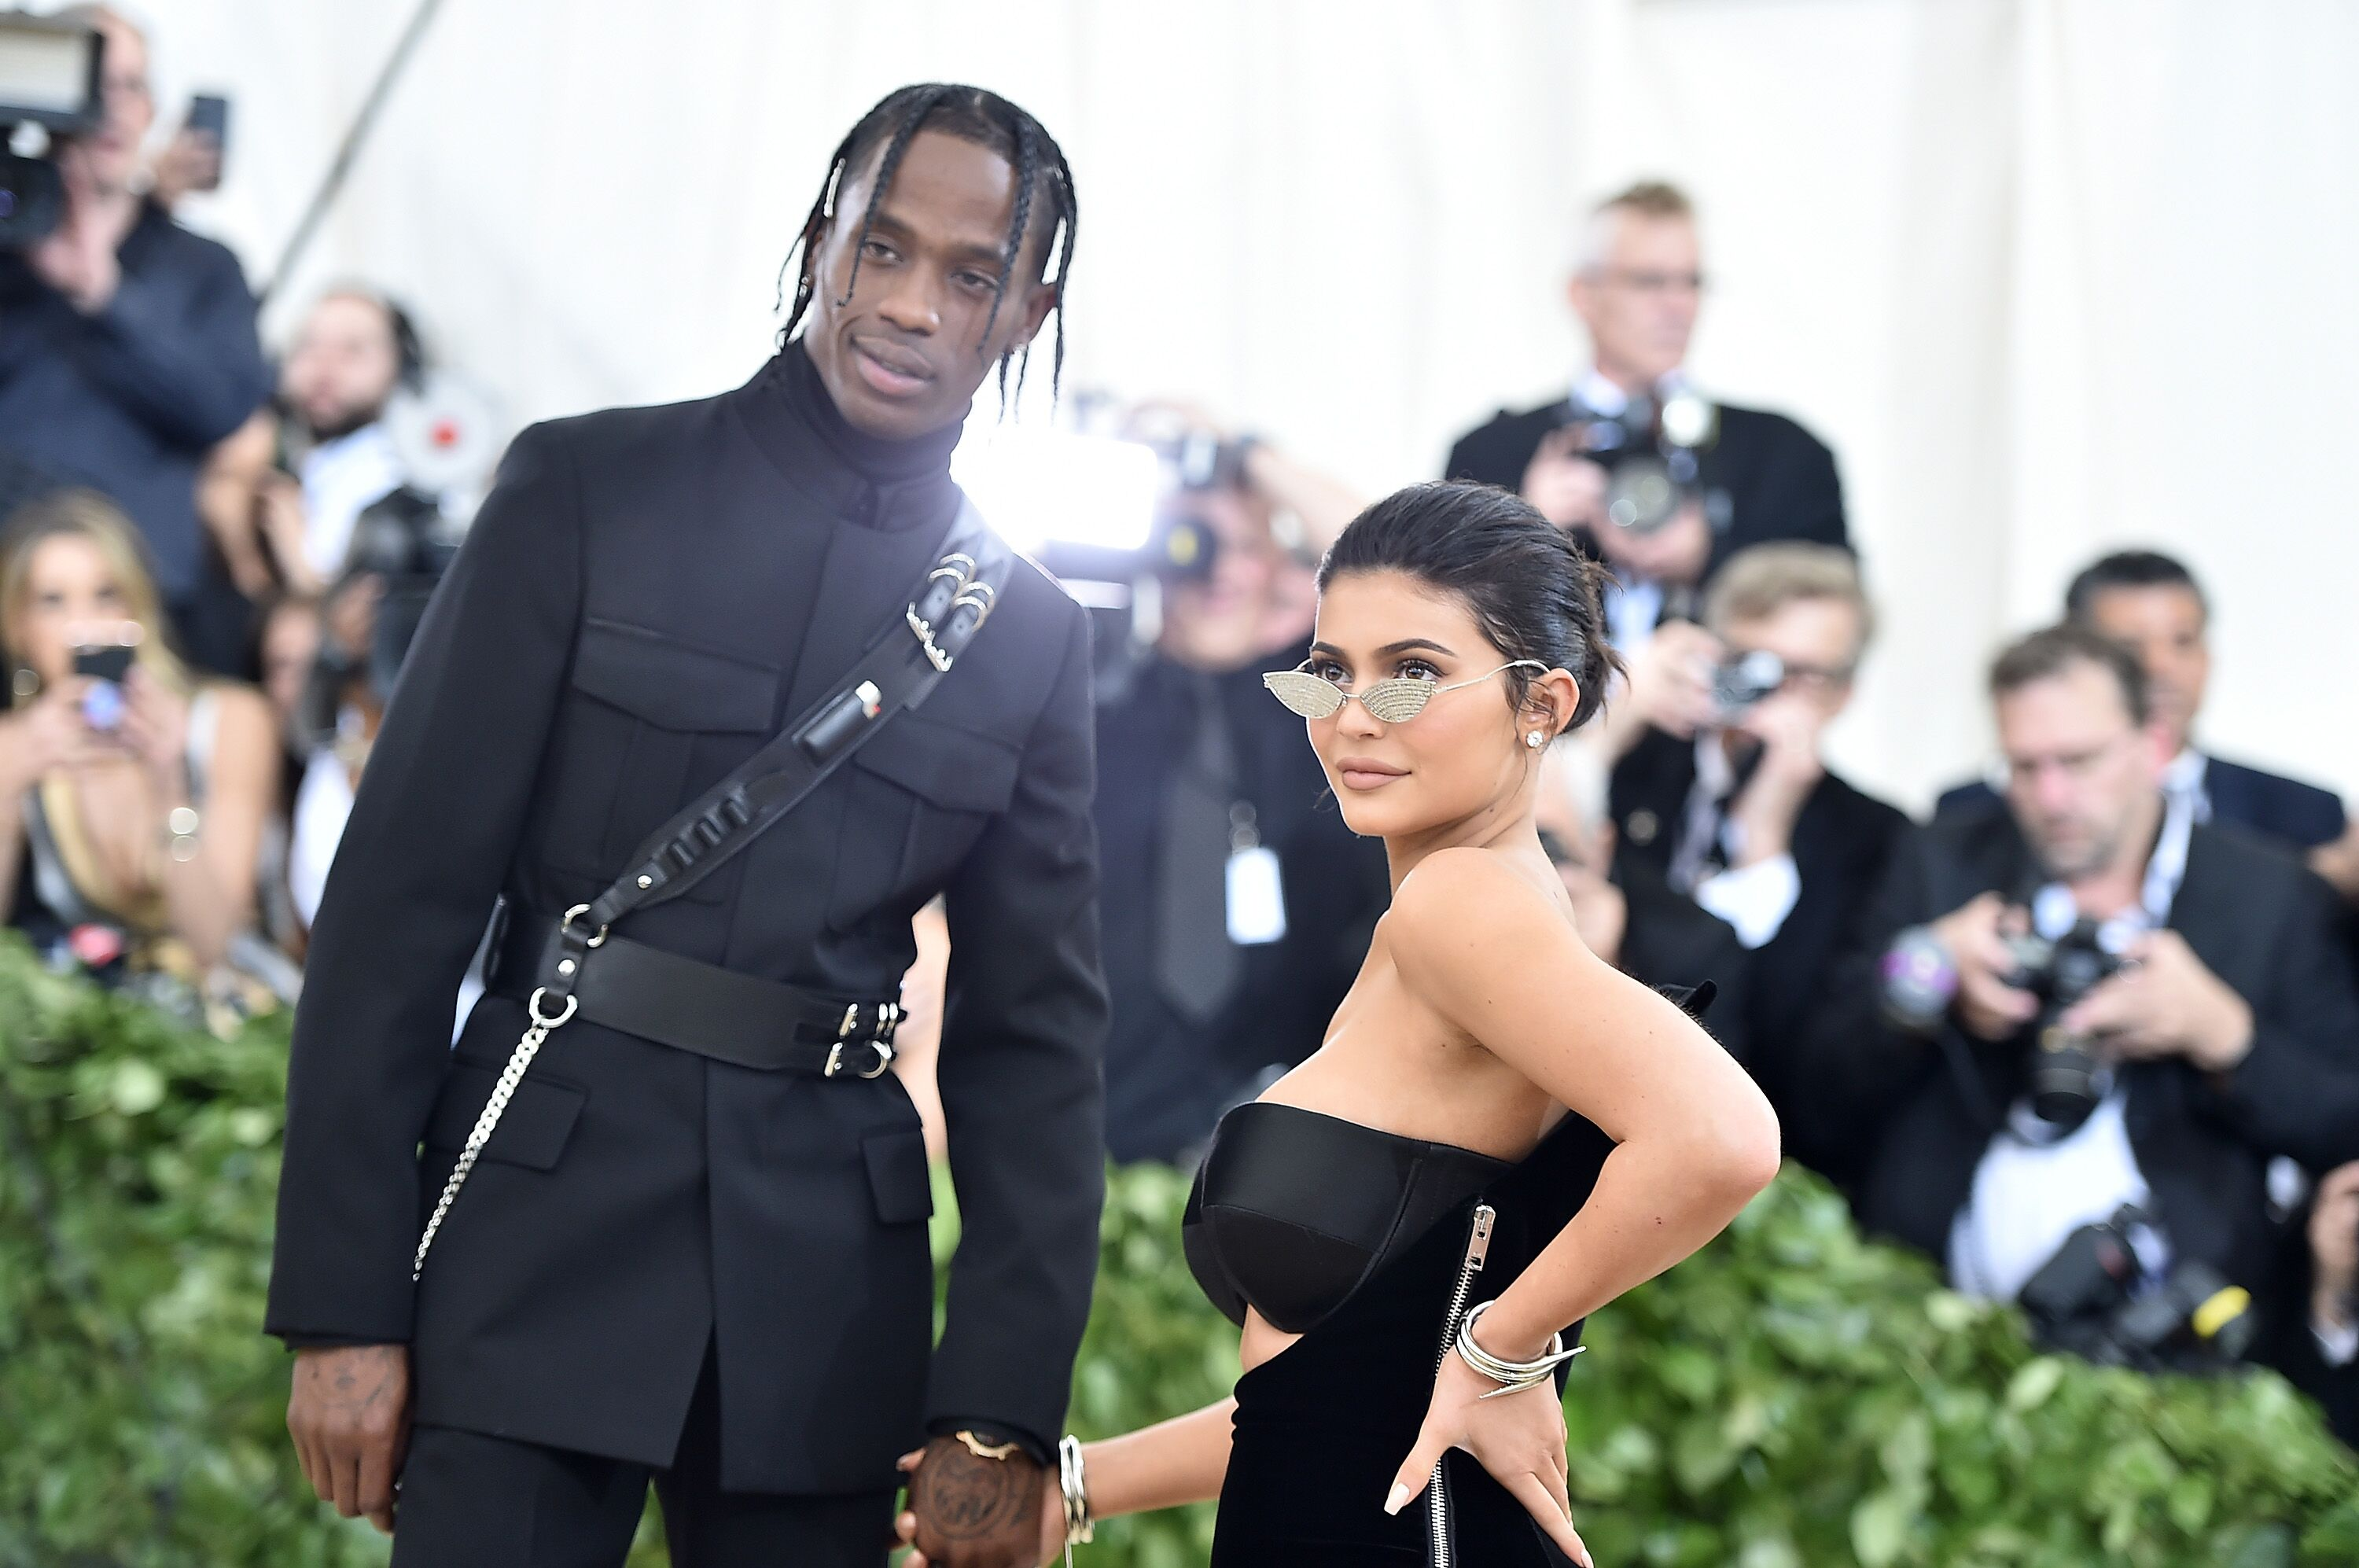 Kylie Jenner and Travis Scott on the red carpet of the MET Gala in New York | Source: Getty Images/GlobalImagesUkraine